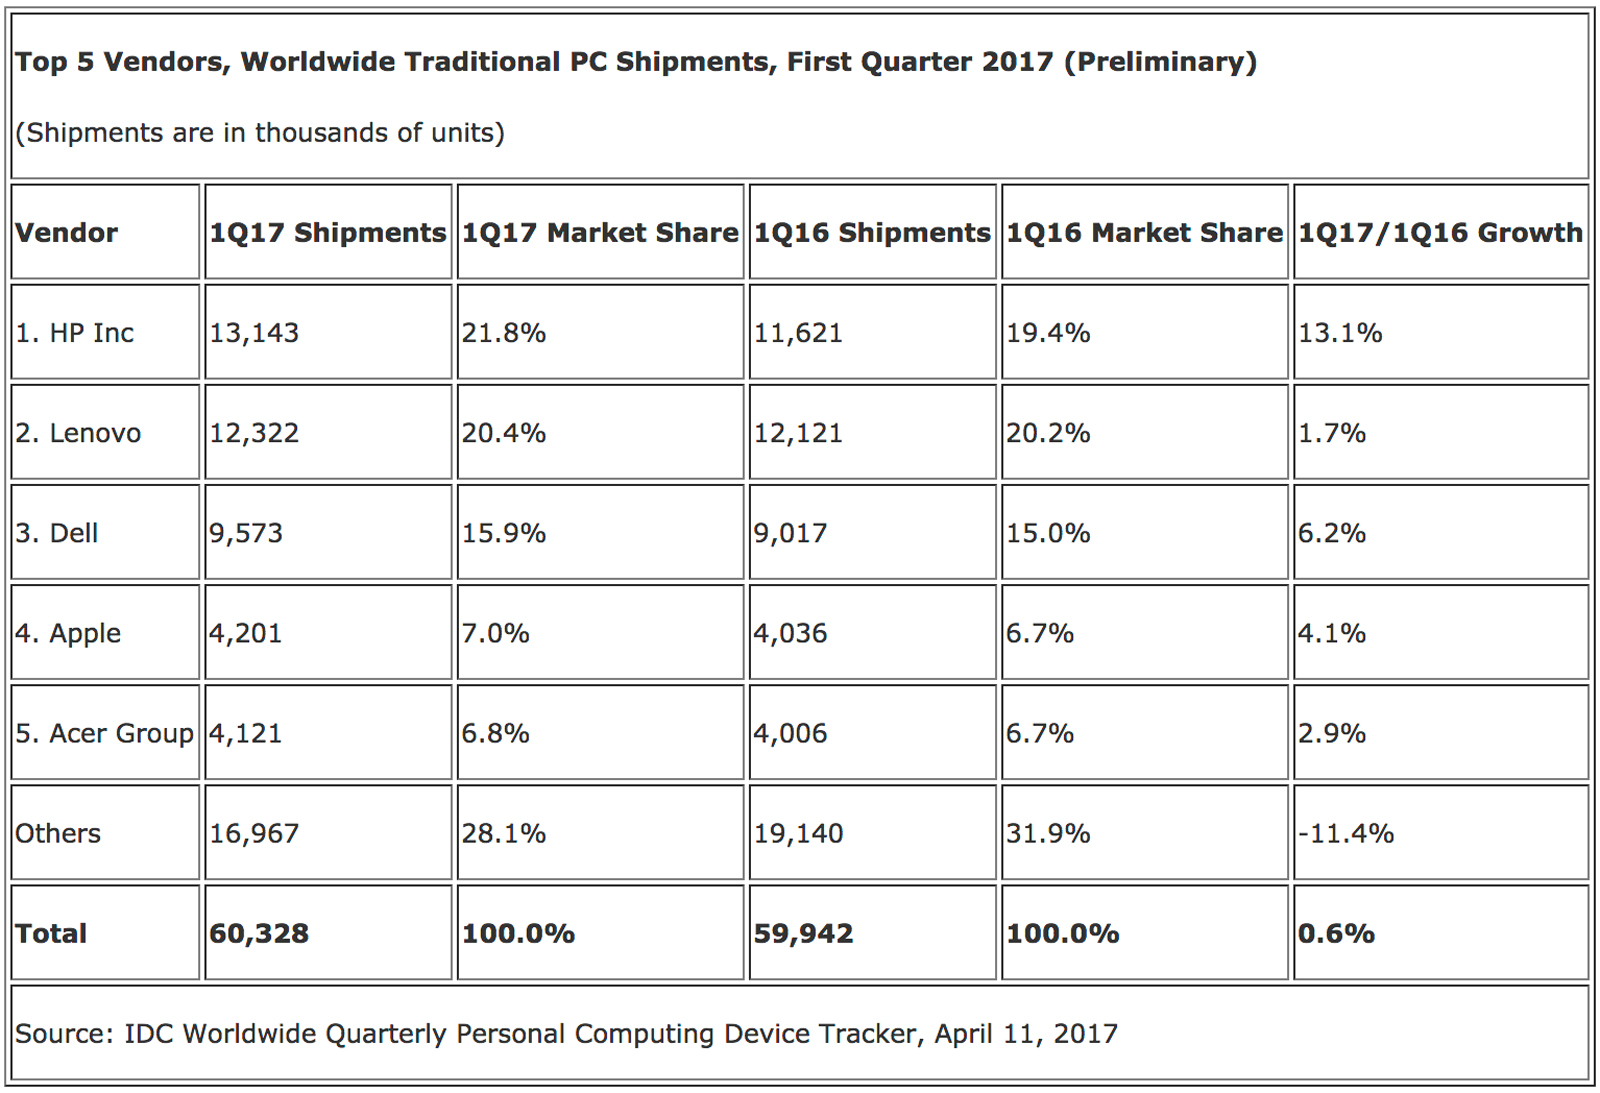 IDC's PC market share estimates for Q1 2017